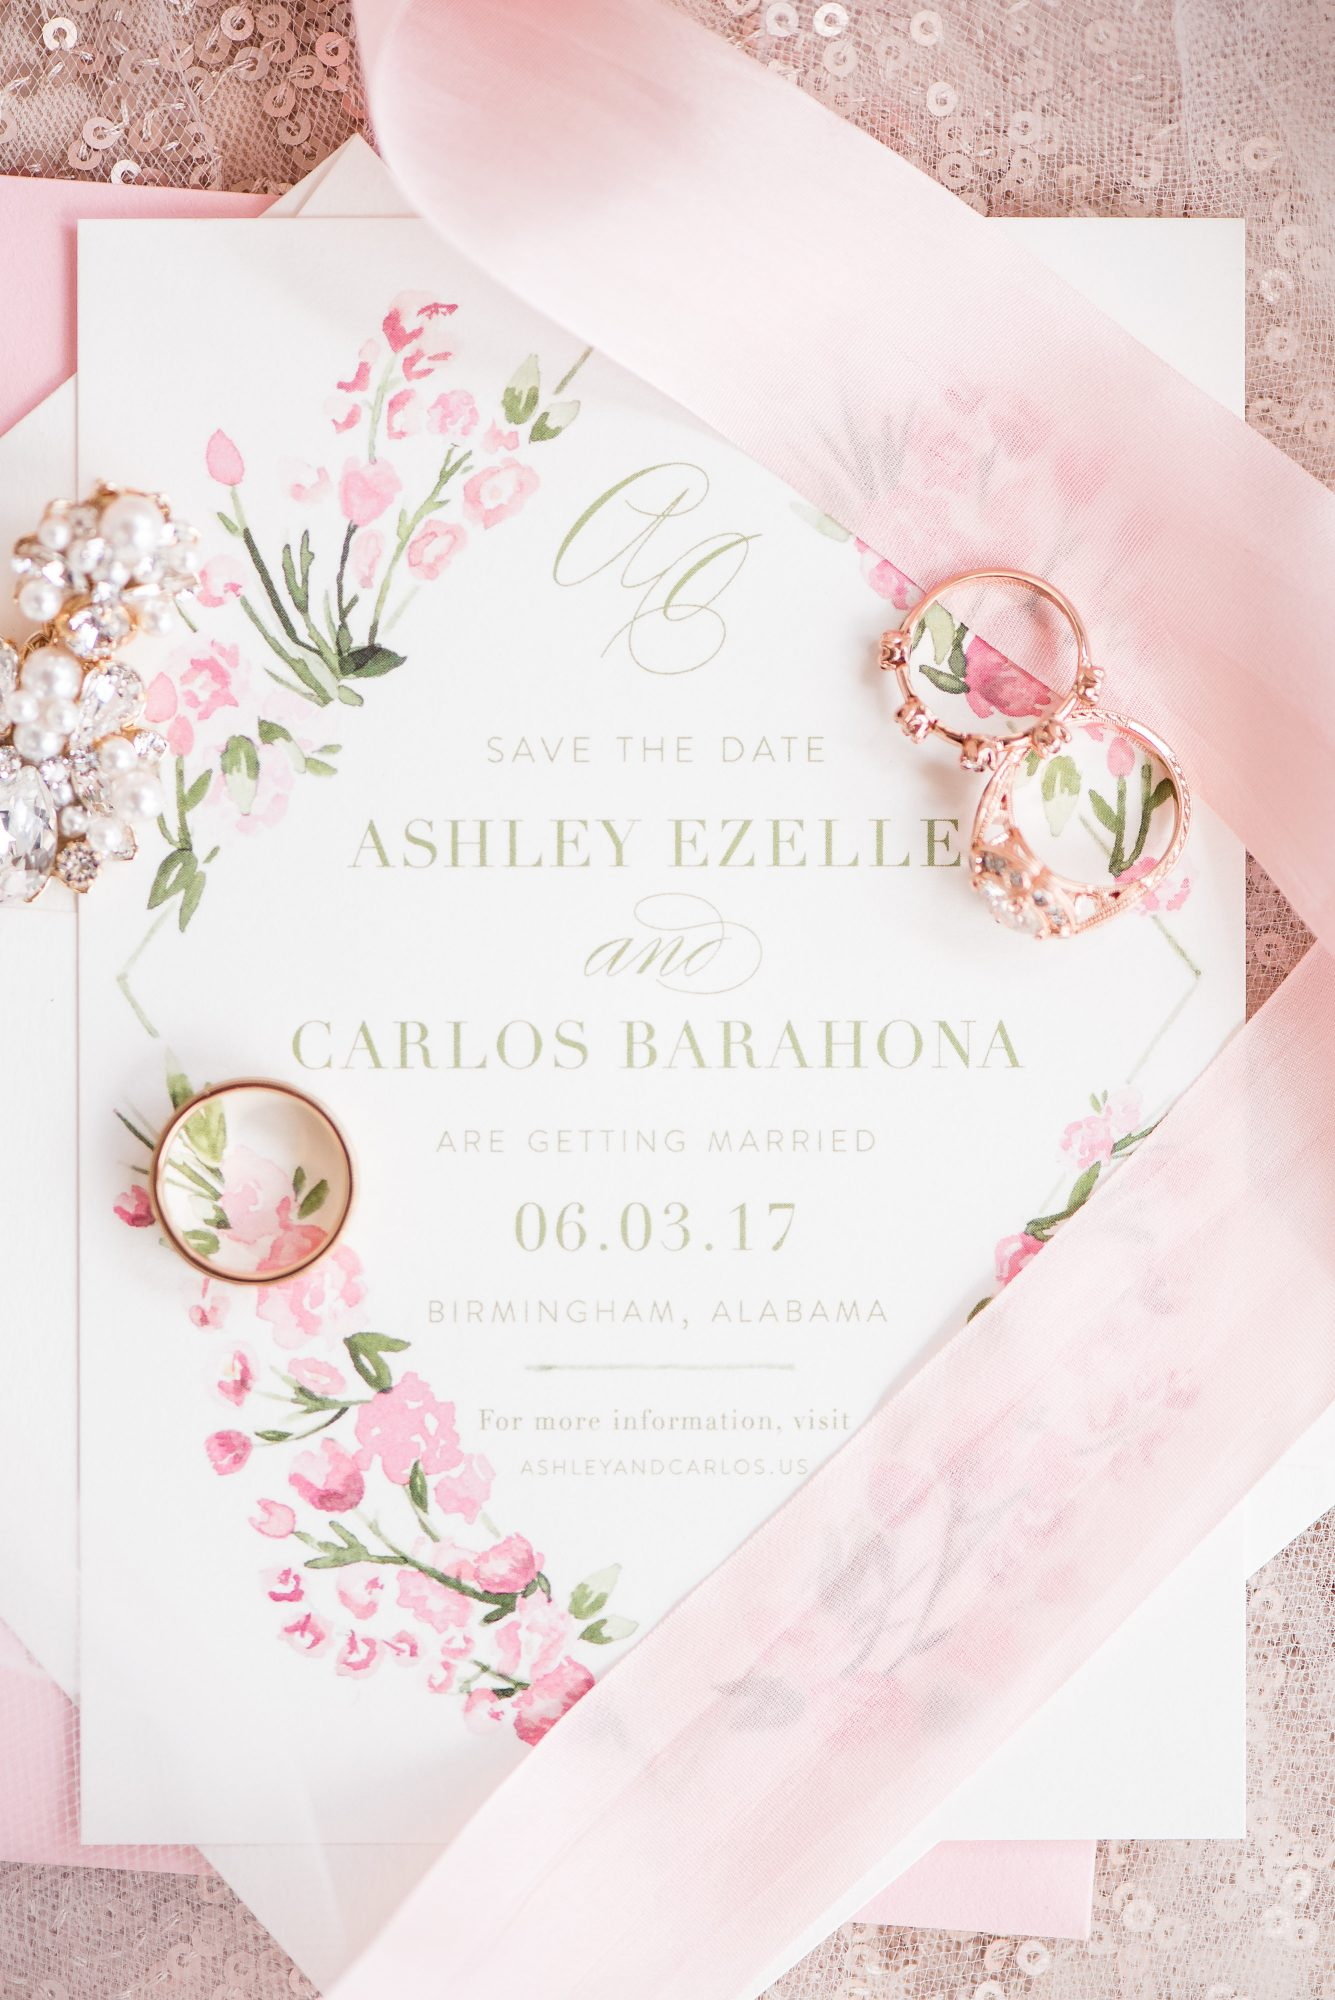 Save the Date Design Ideas